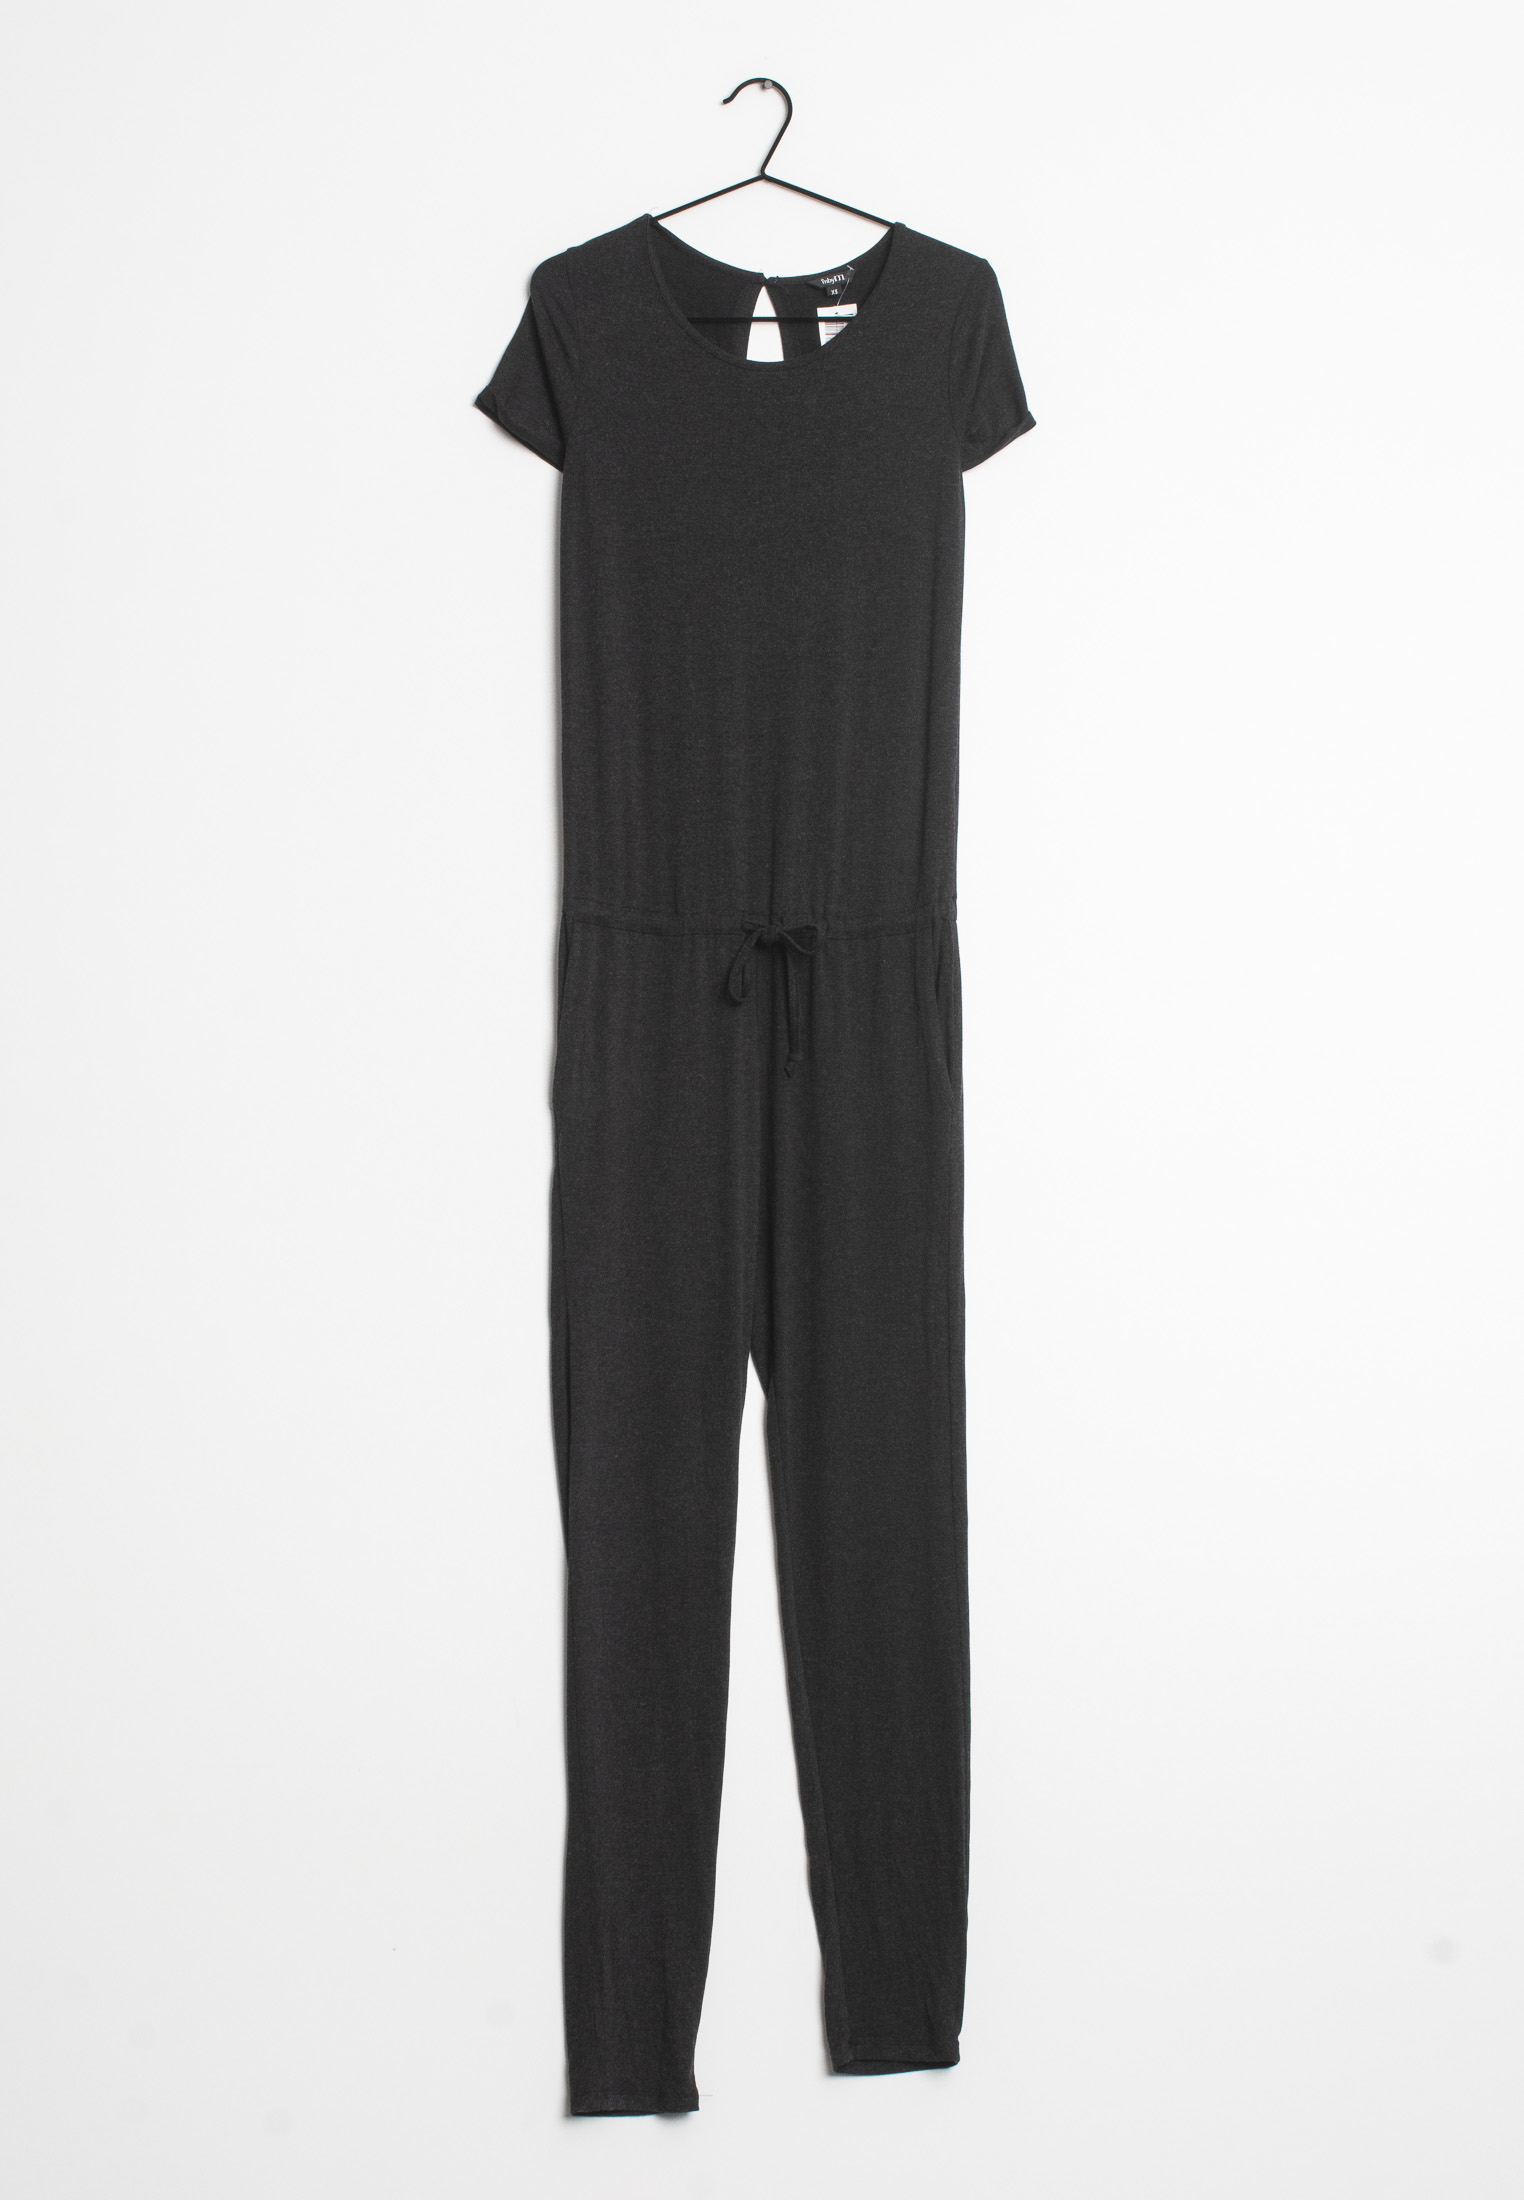 mbyM Jumpsuit / Overall Grau Gr.XS